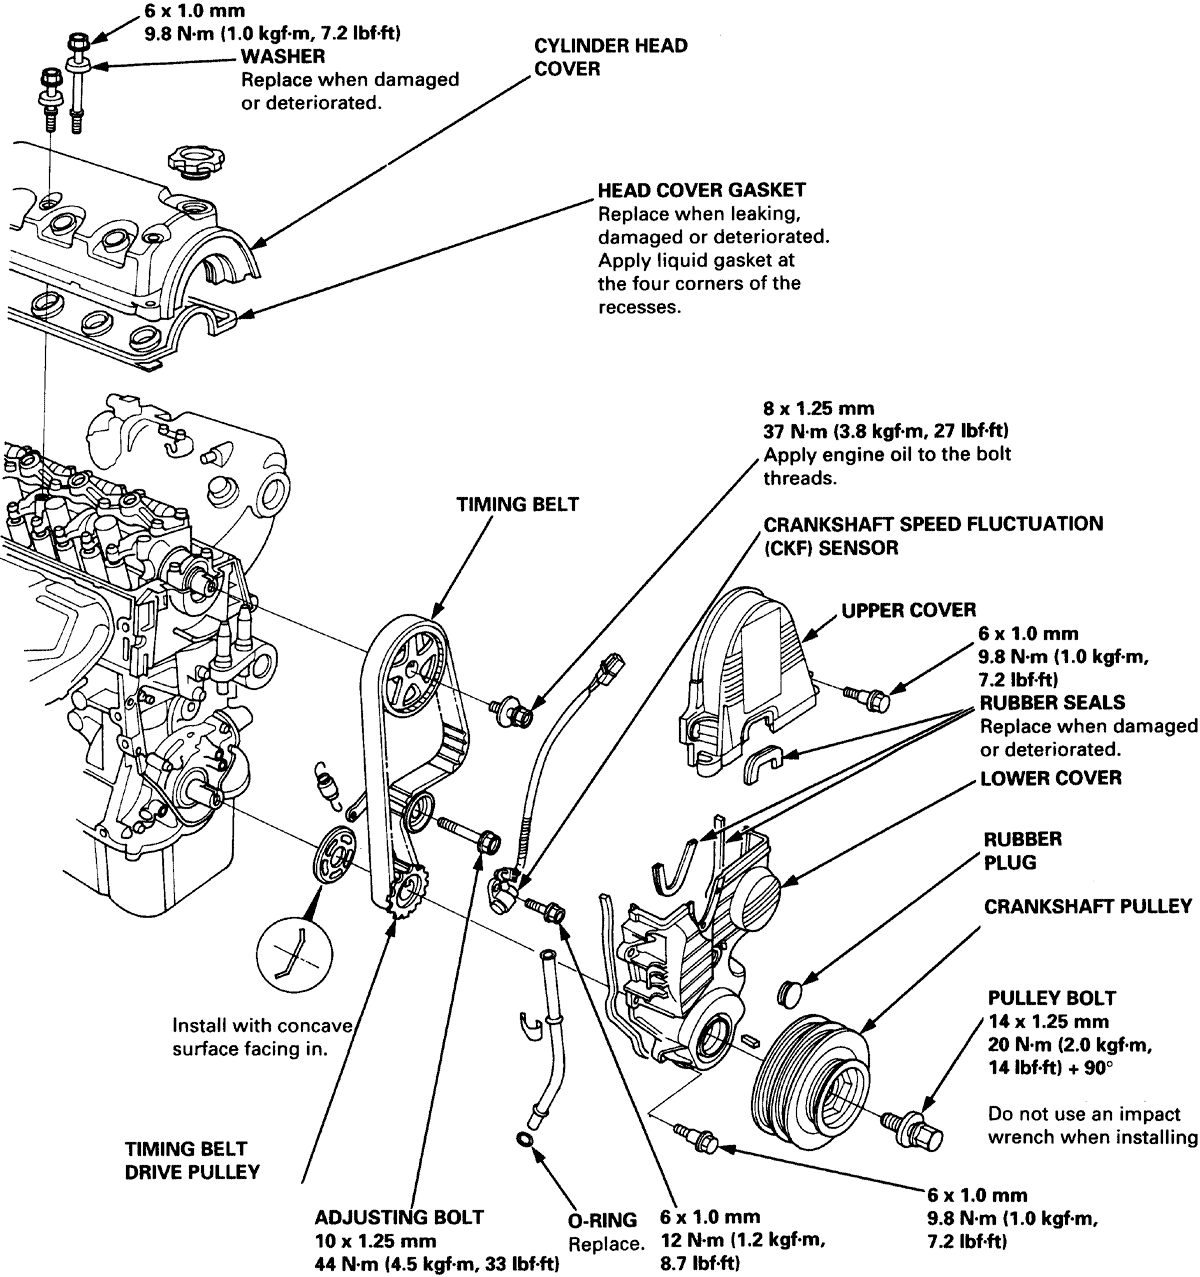 Honda Odyssey Engine Diagram